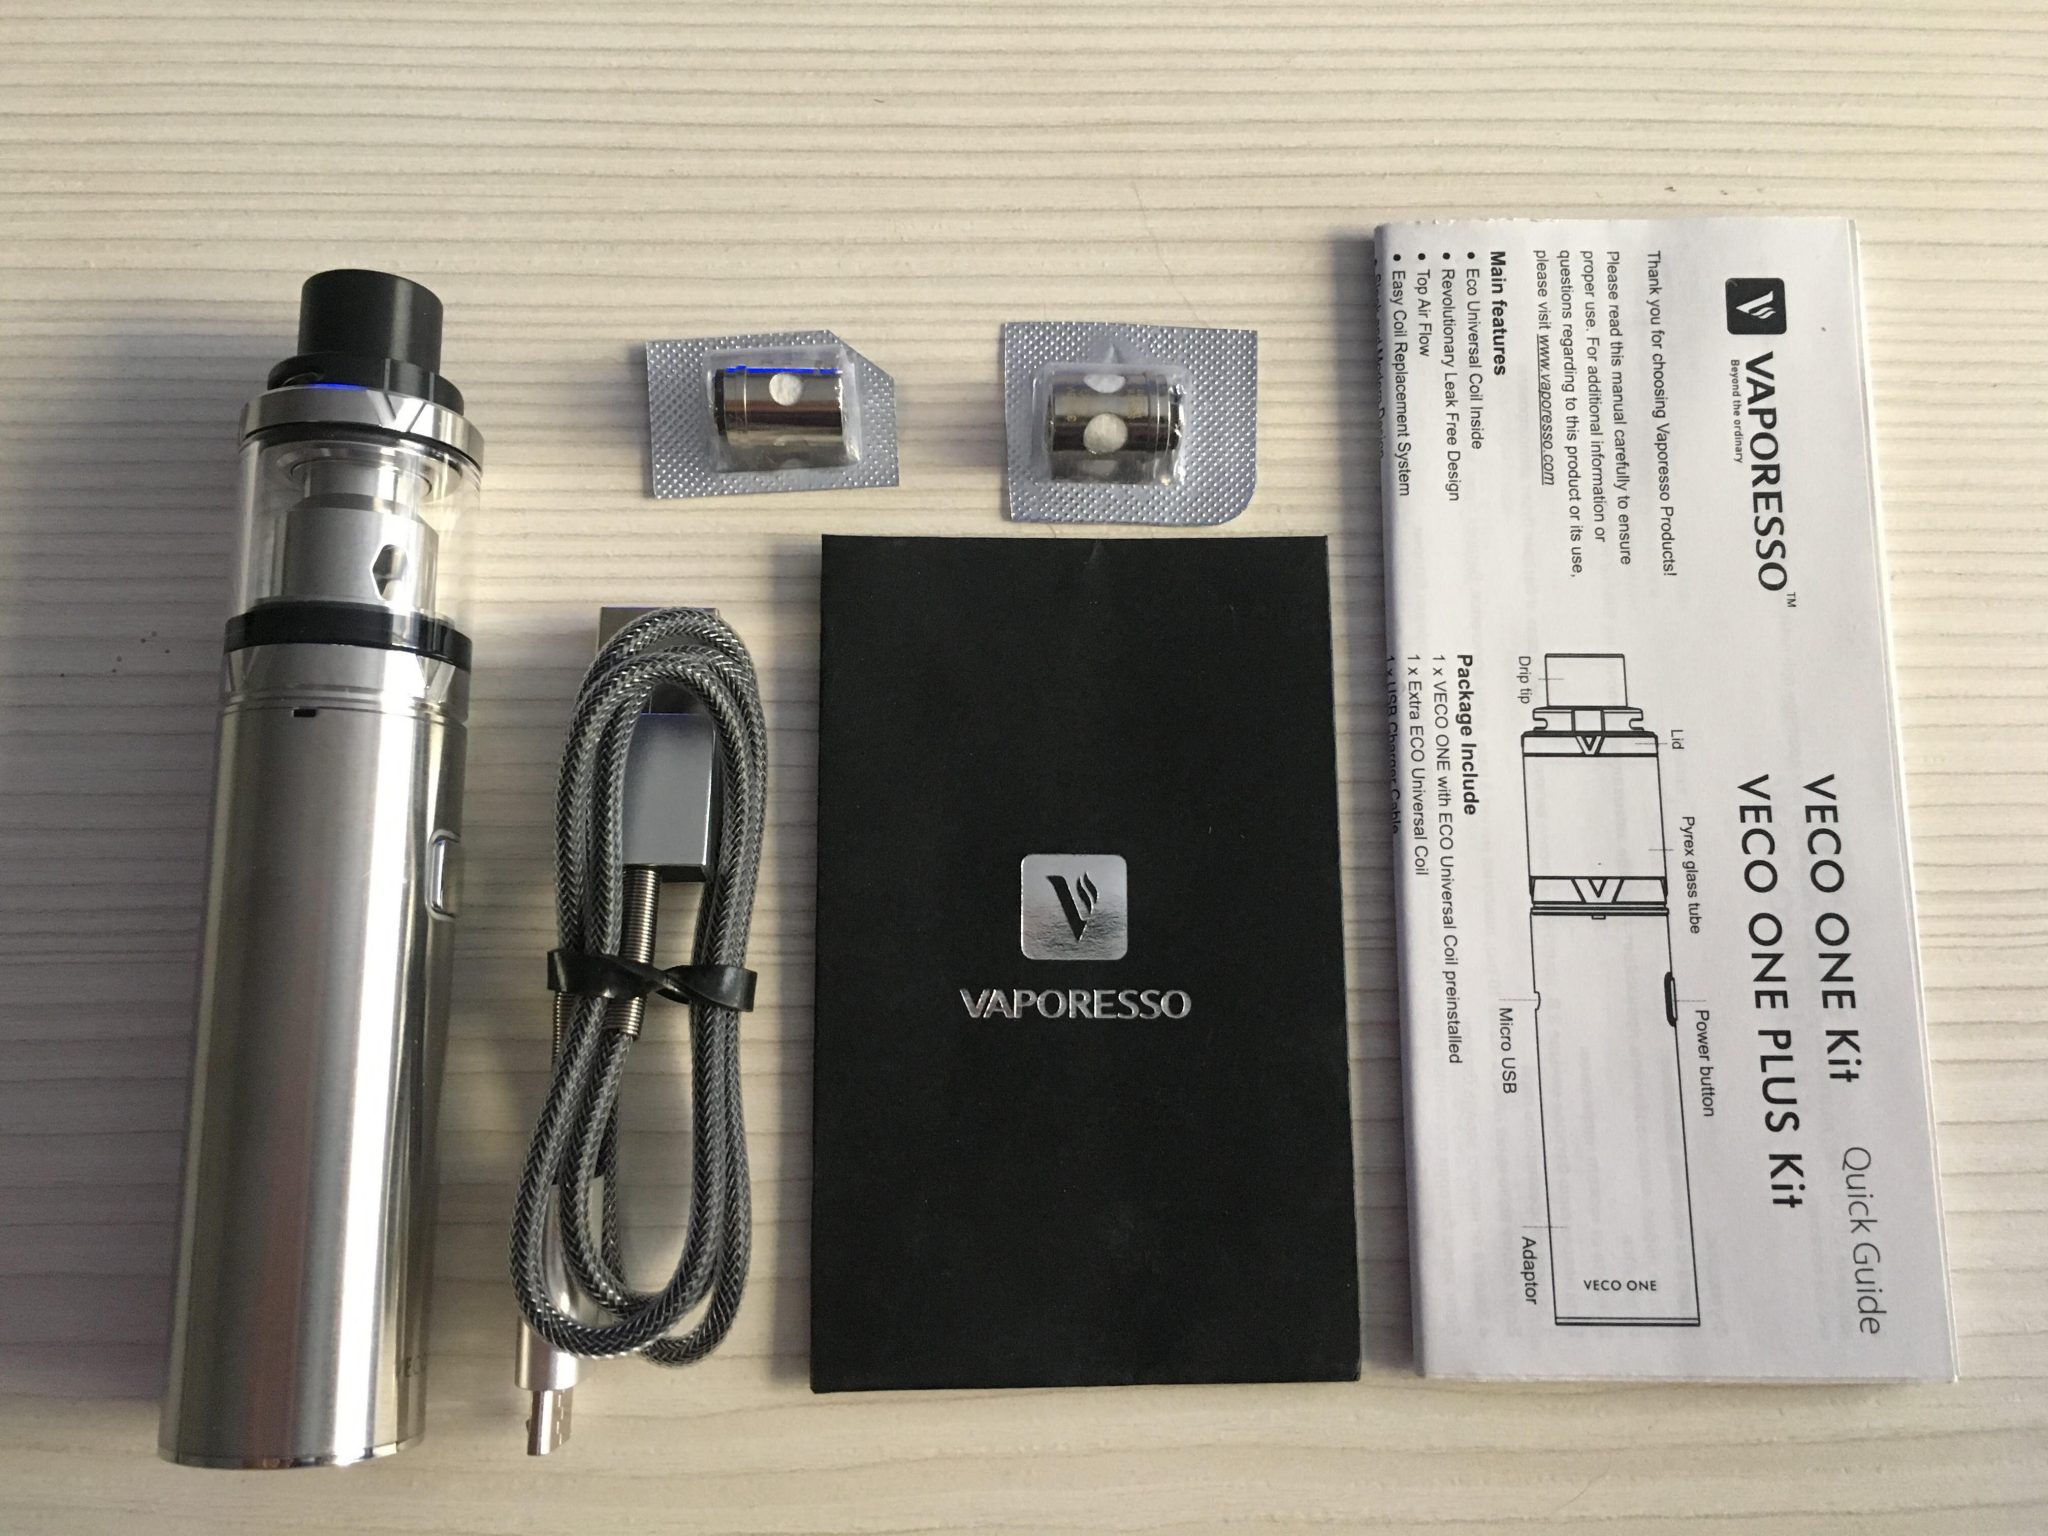 Vaporesso Veco One Kit Review